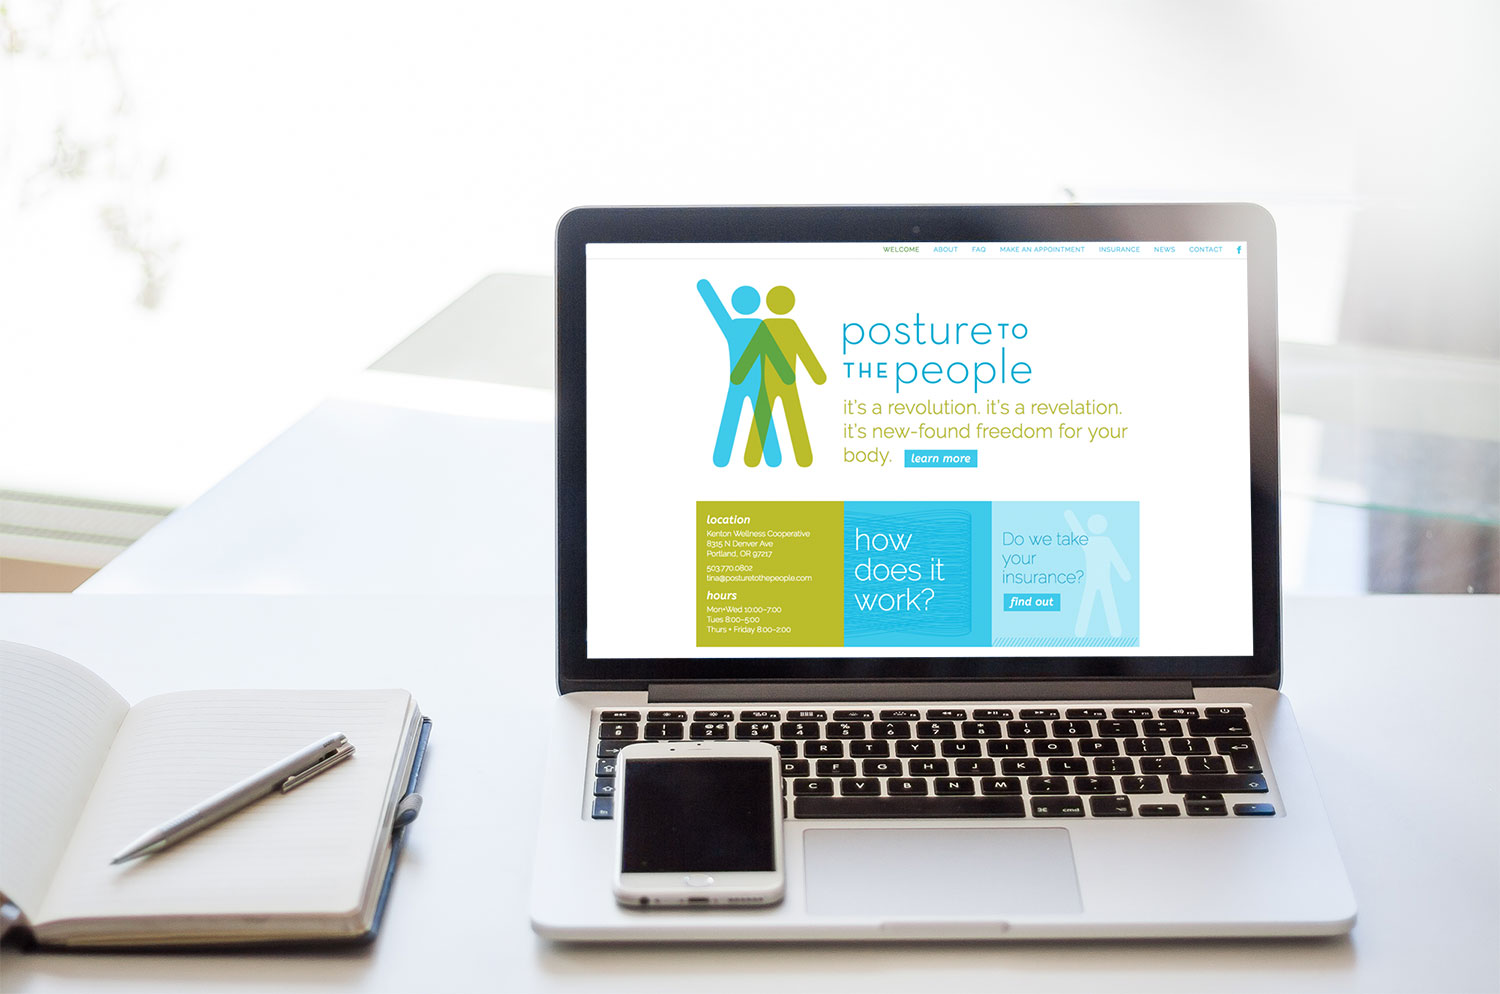 Posture_to_the_People_website_development